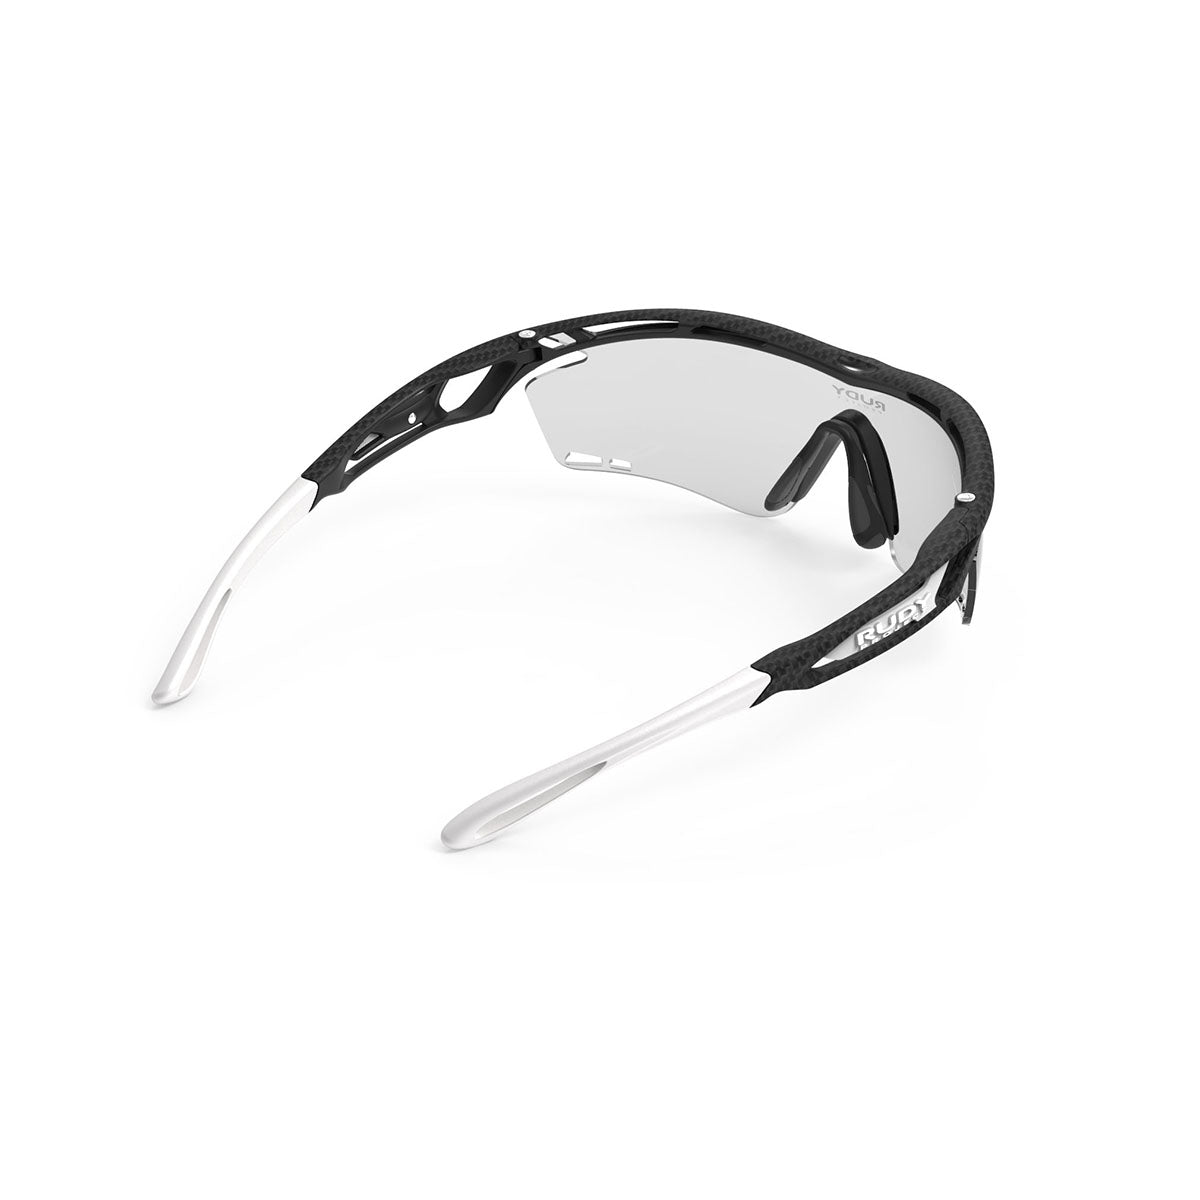 Rudy Project - Tralyx - frame color: Carbonium - lens color: ImpactX-2 Photochromic Clear to Laser Black - photo angle: Top Back Angle Variant Hover Image